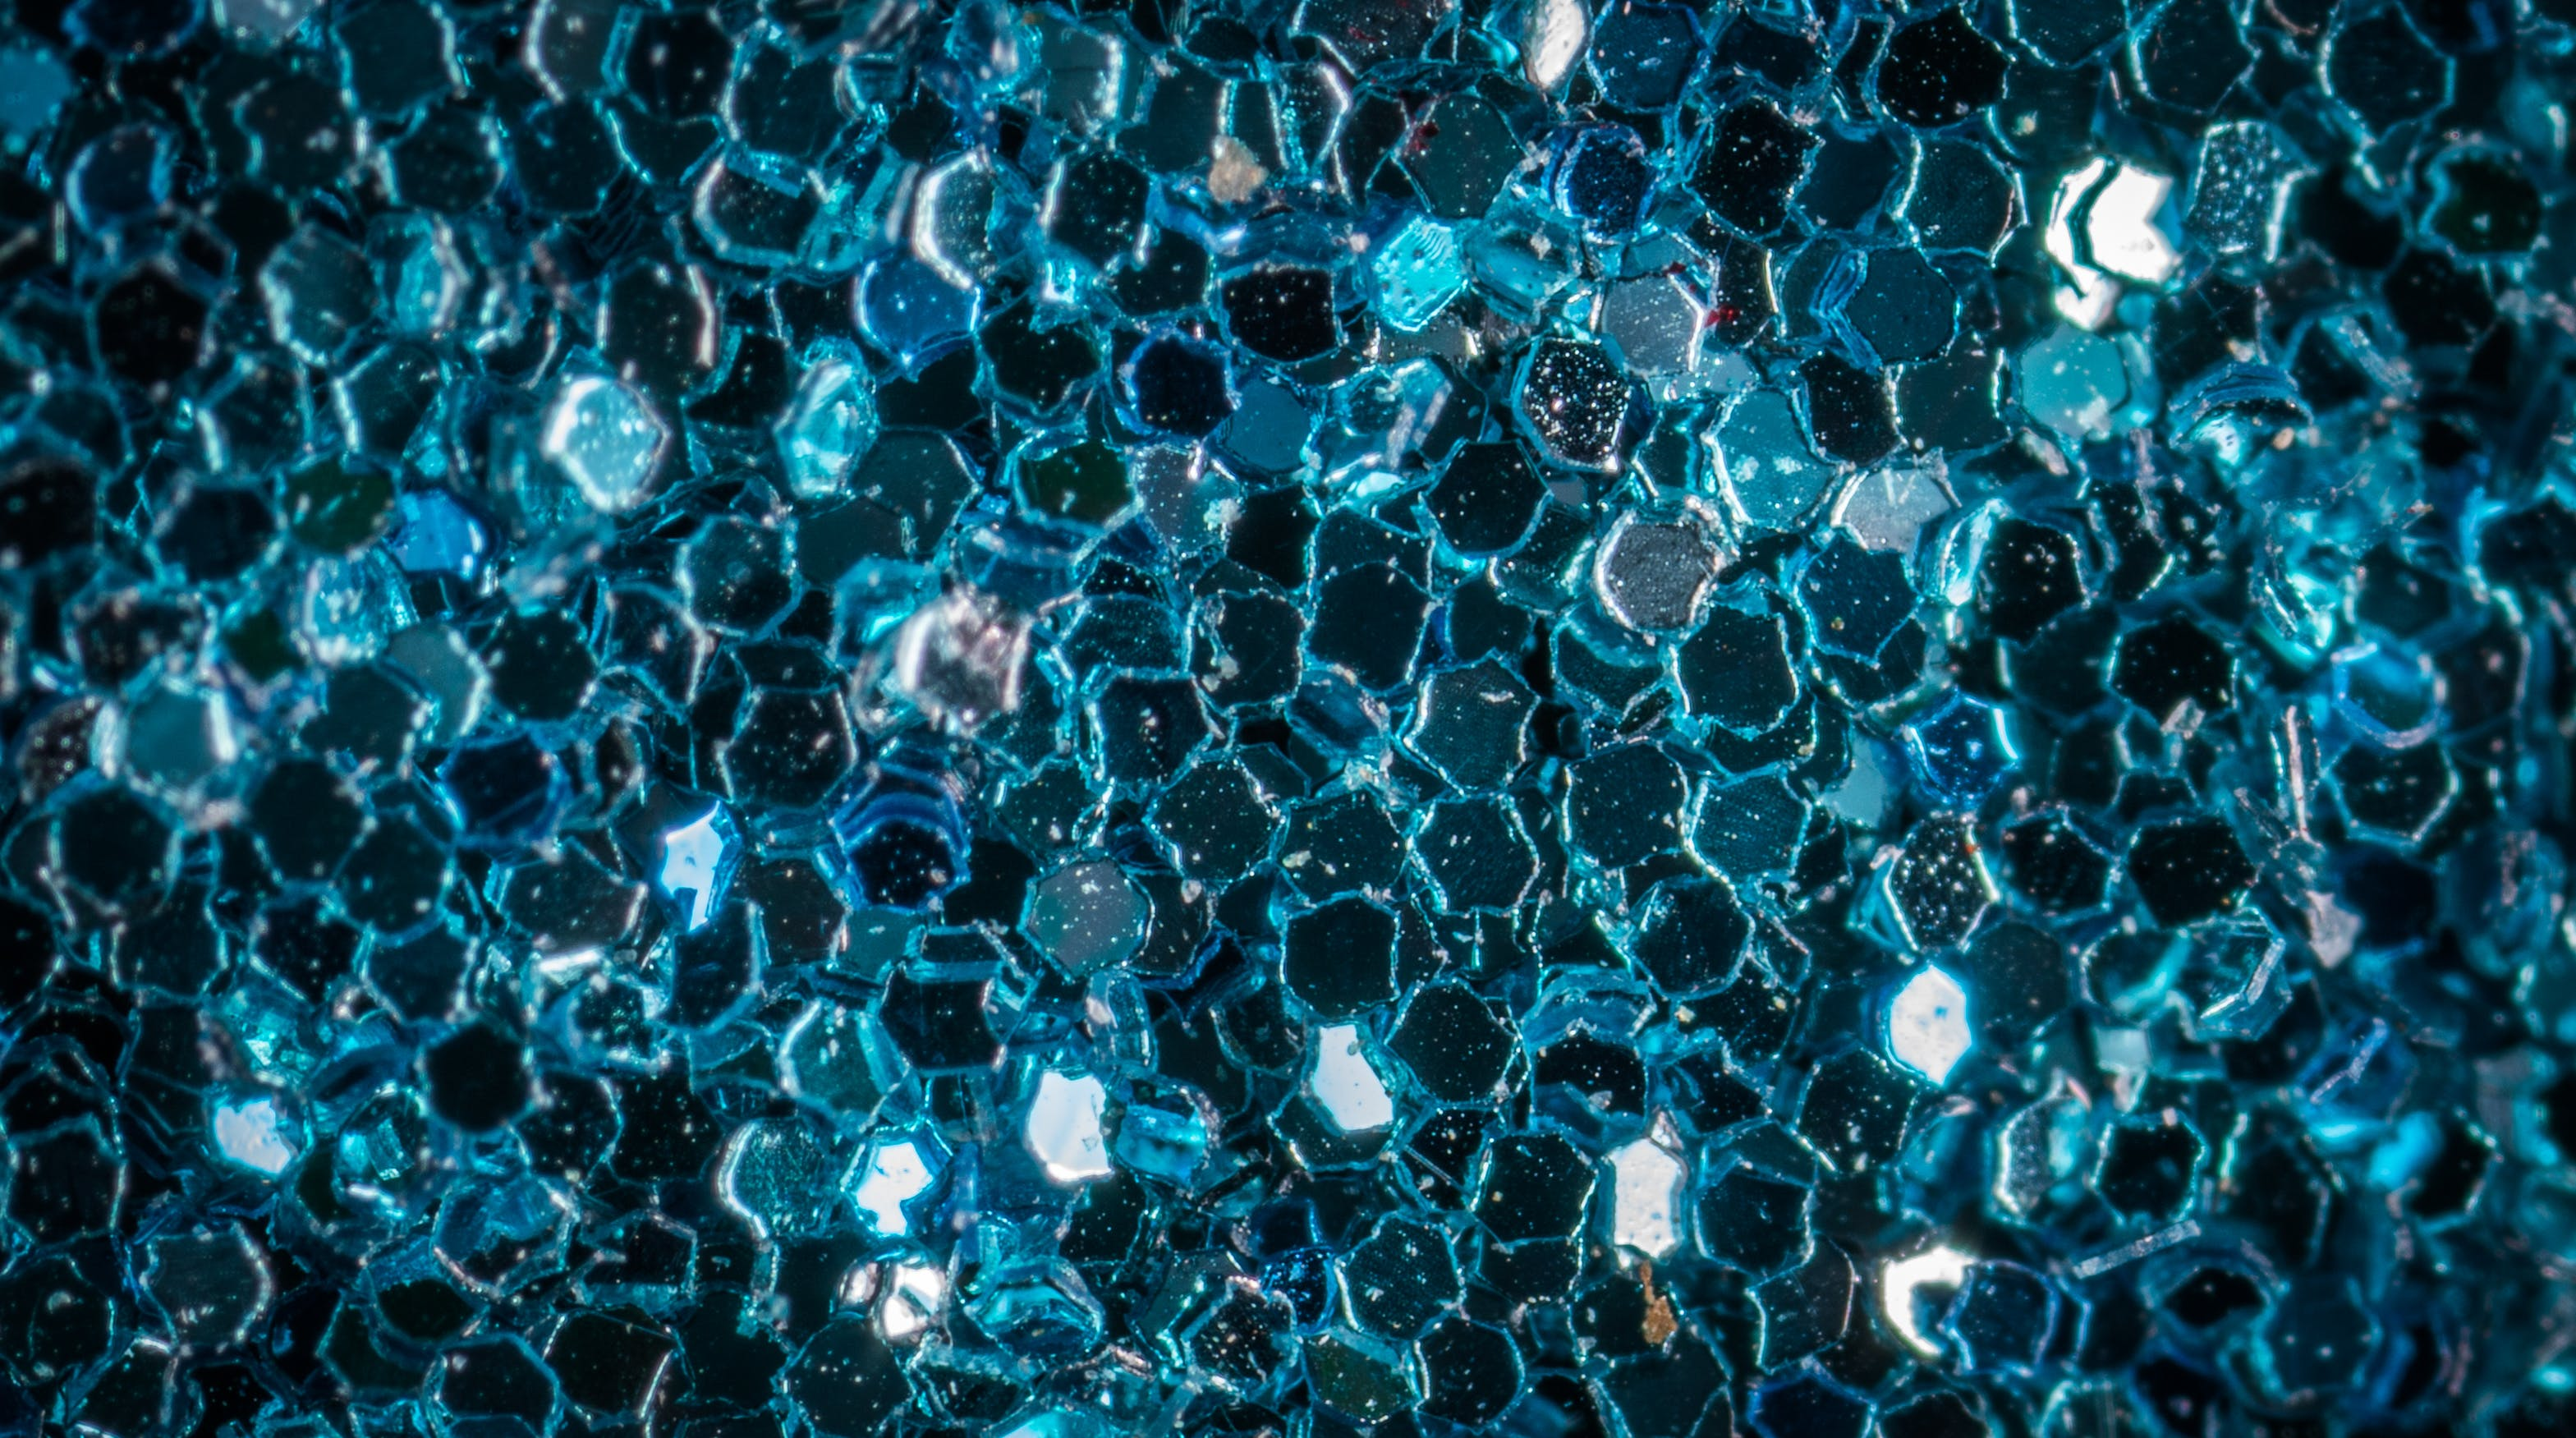 Free stock photo of blue, pattern, texture, abstract